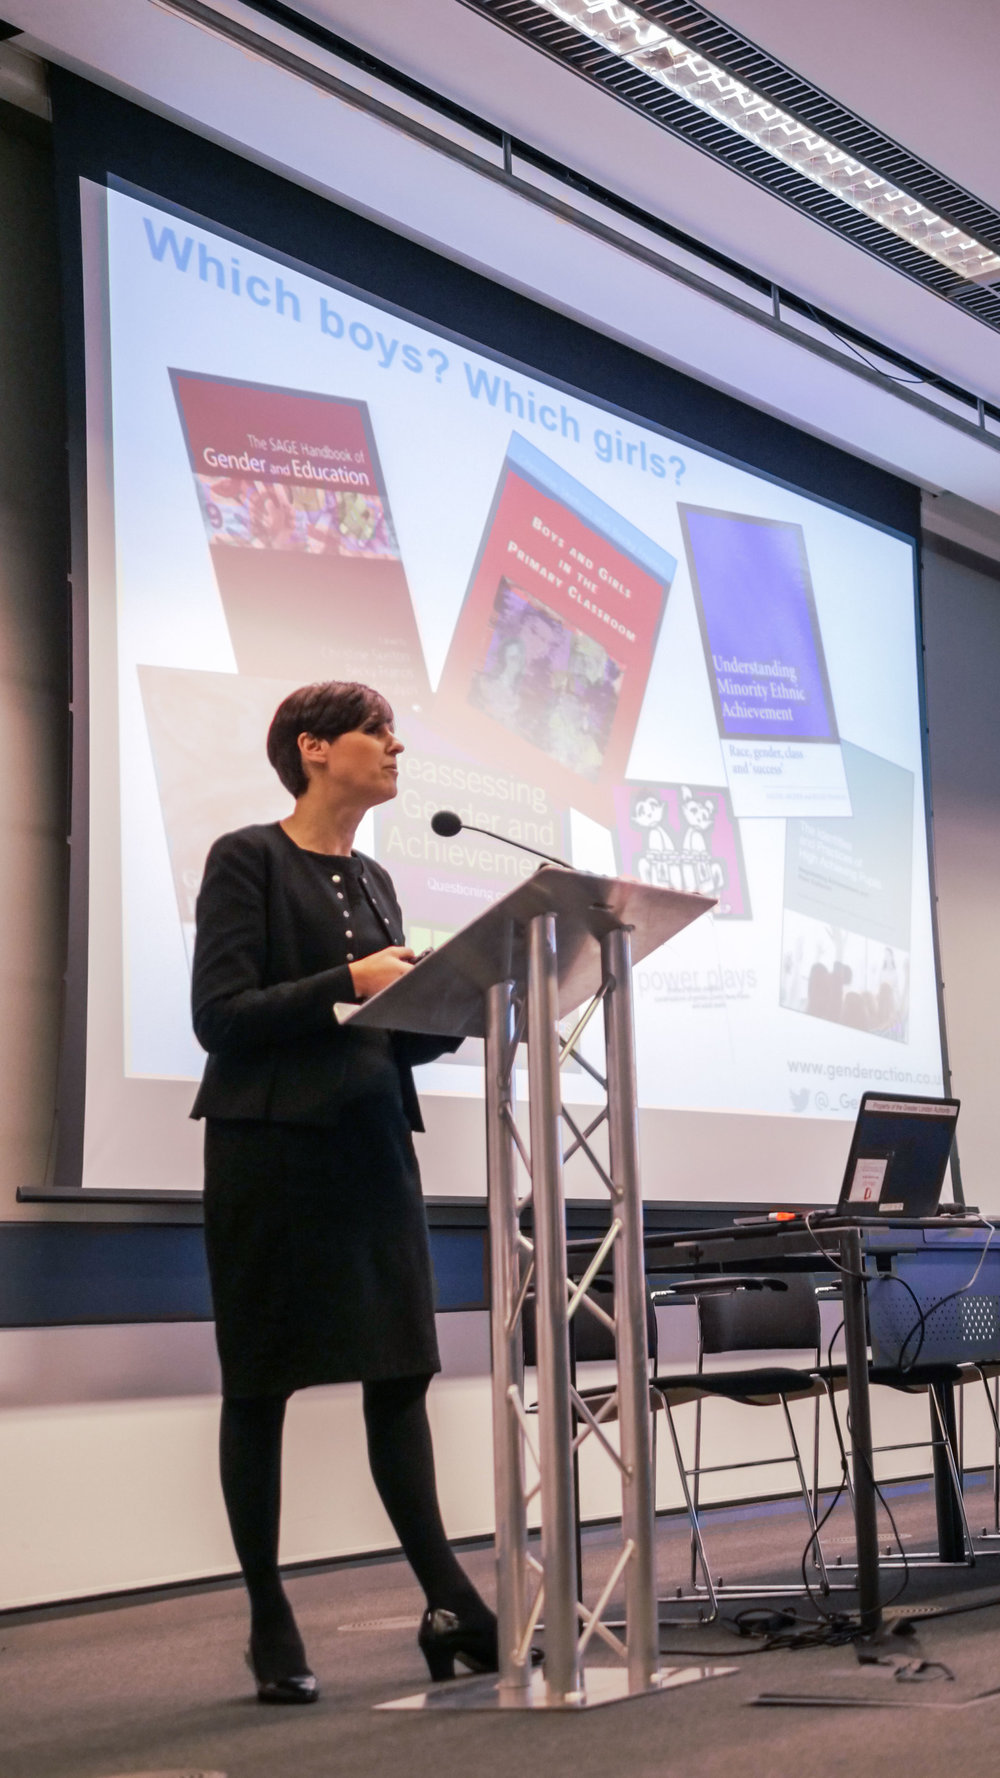 Professor Becky Francis, Director of UCL Institute of Education, speaking about her research as keynote speaker